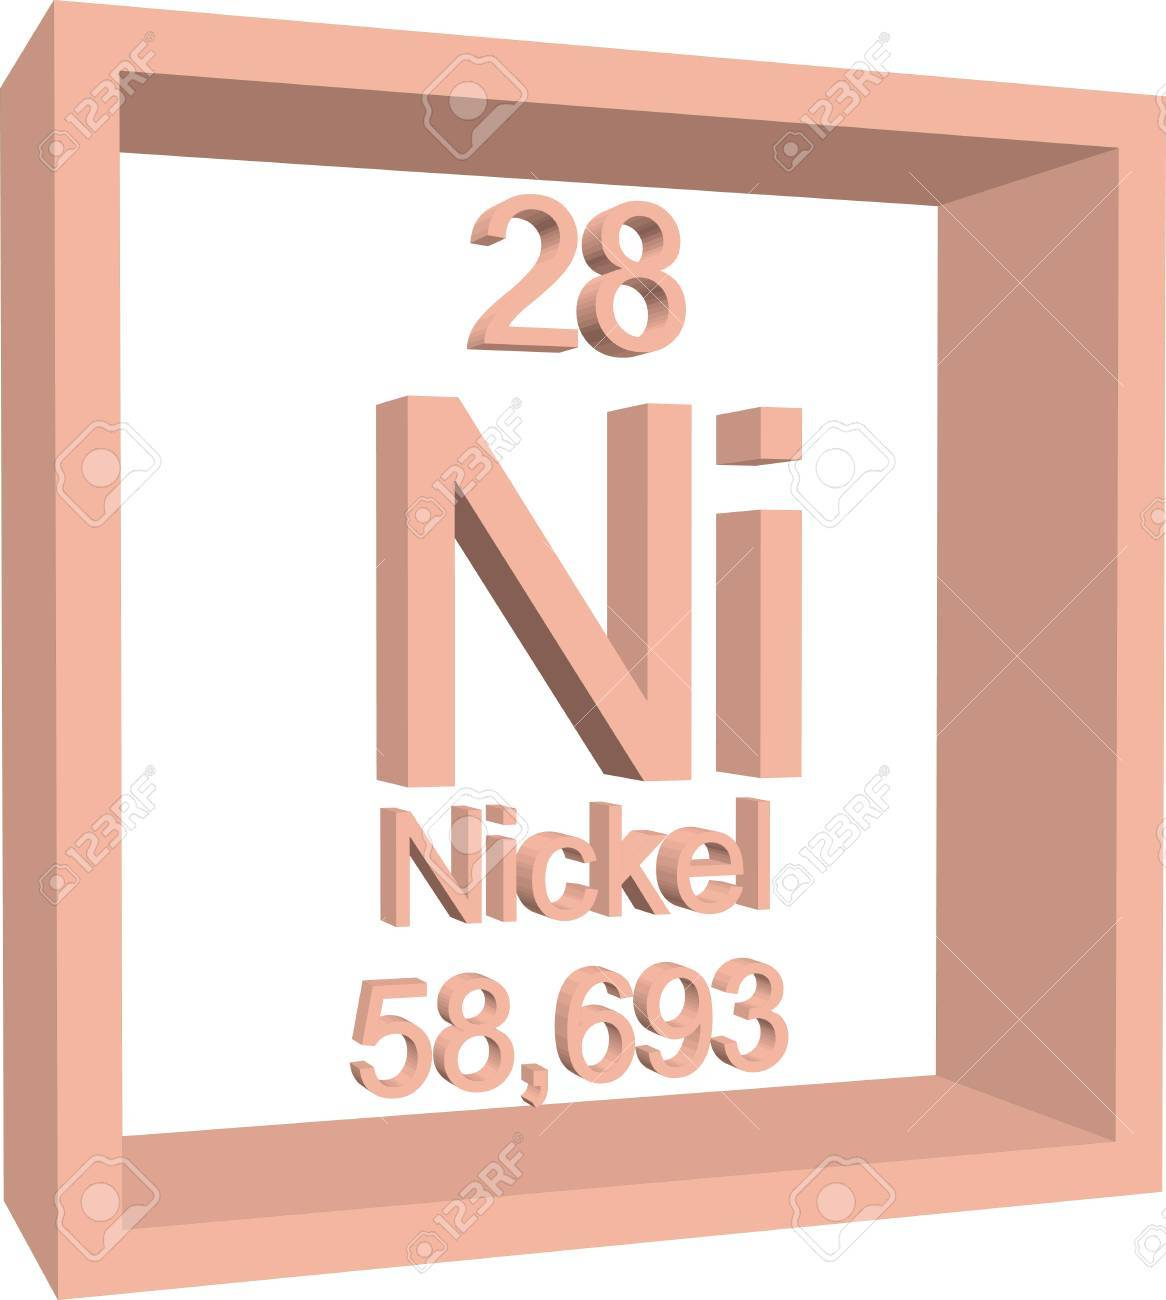 Nickel element periodic table image collections periodic table 43rd element periodic table gallery periodic table images periodic table symbol for nickel image collections periodic gamestrikefo Gallery